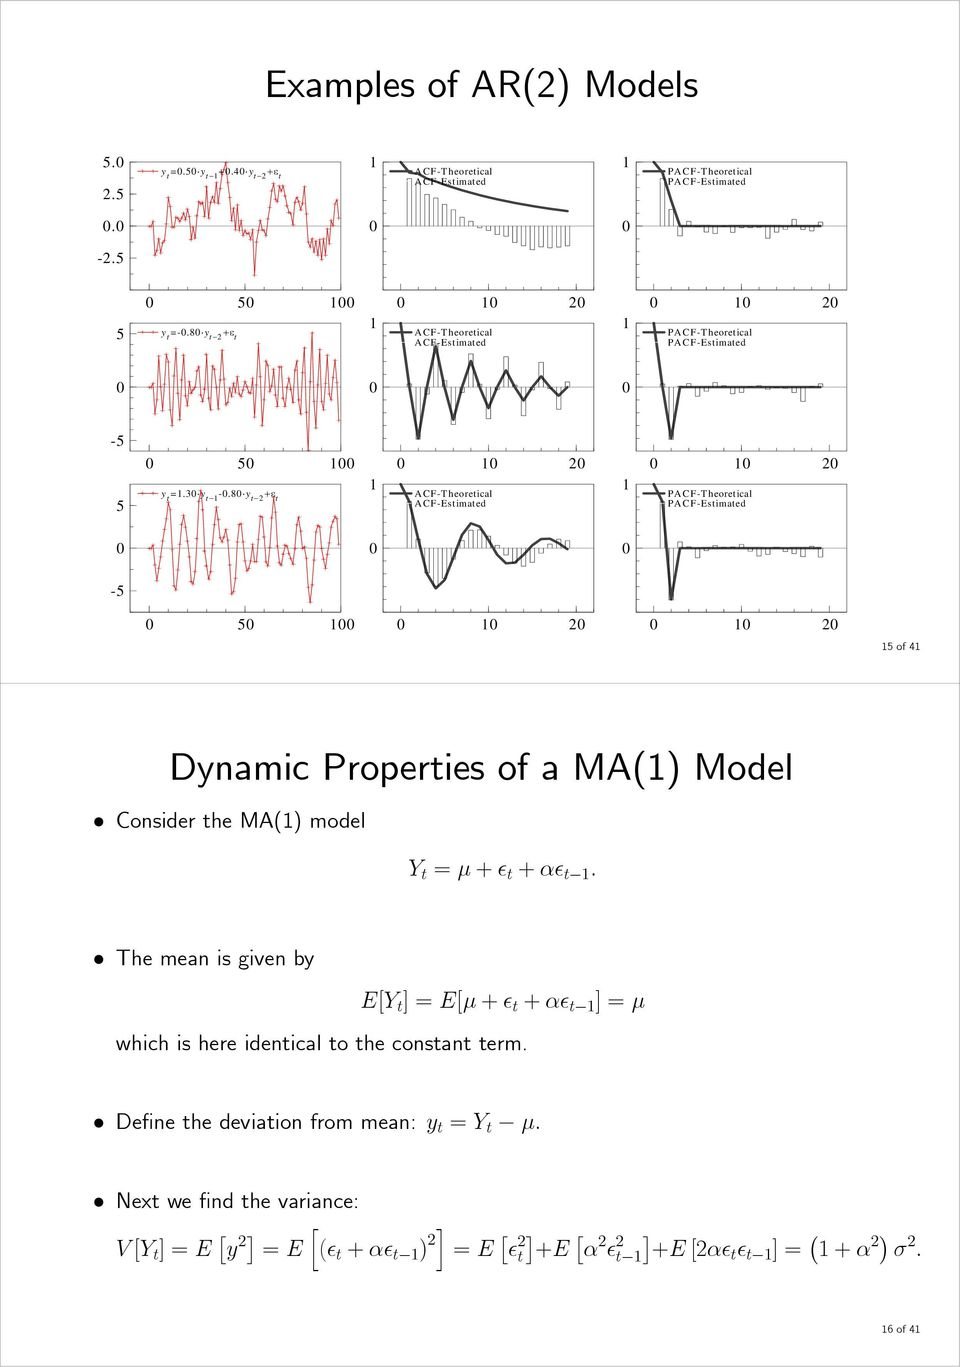 8 y t 2 +ε t 2 ACF-Theoretical ACF-Estimated 2 PACF-Theoretical PACF-Estimated -5 5 2 2 5 of 4 Dynamic Properties of a MA() Model Consider the MA() model Y t = µ + t